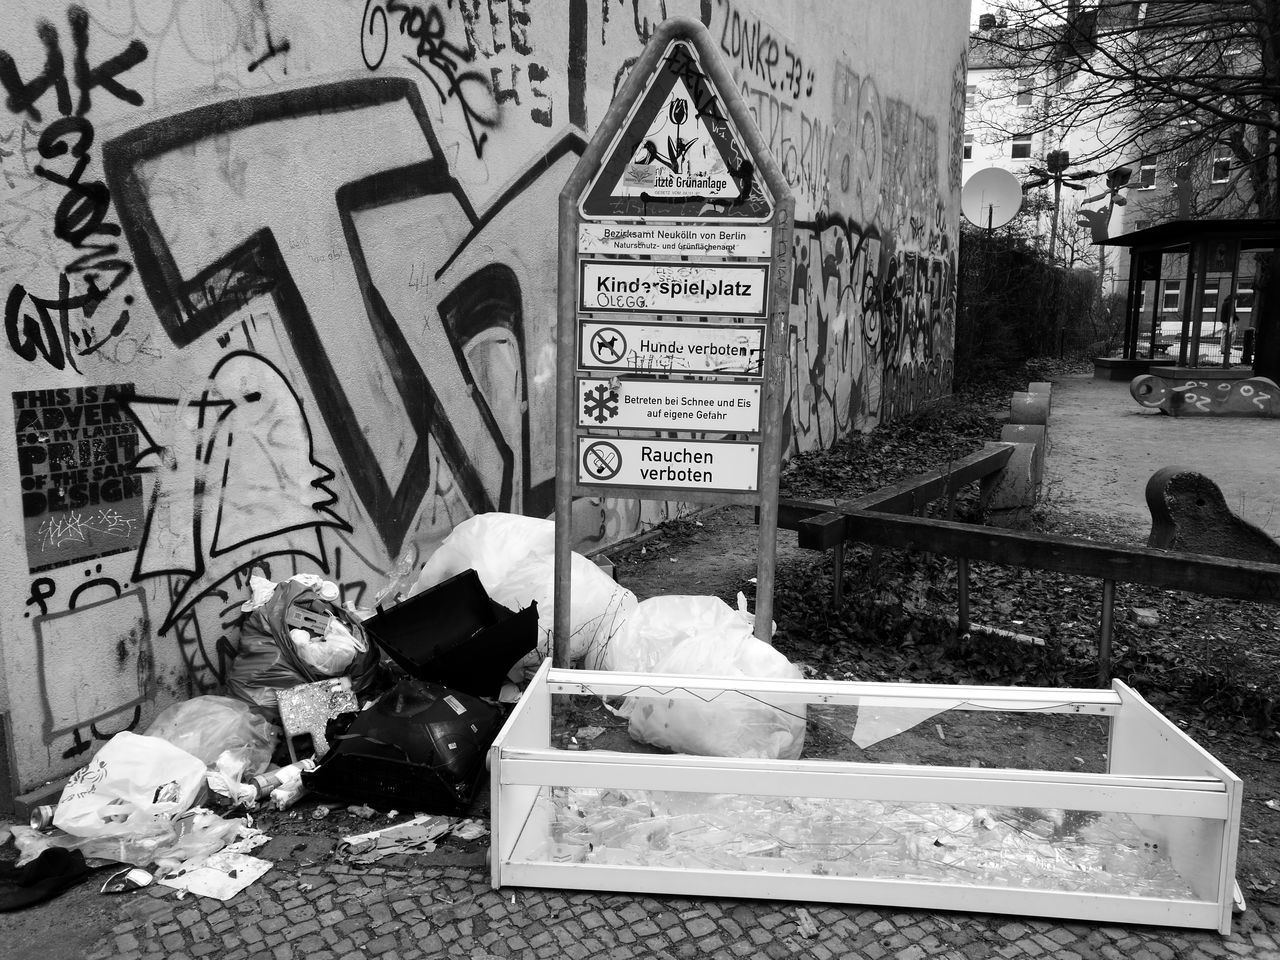 Berlin Berlin Photography Berliner Ansichten Day Dreck Garbage Müll Neukölln Social Issues Street Text Waste Wasted